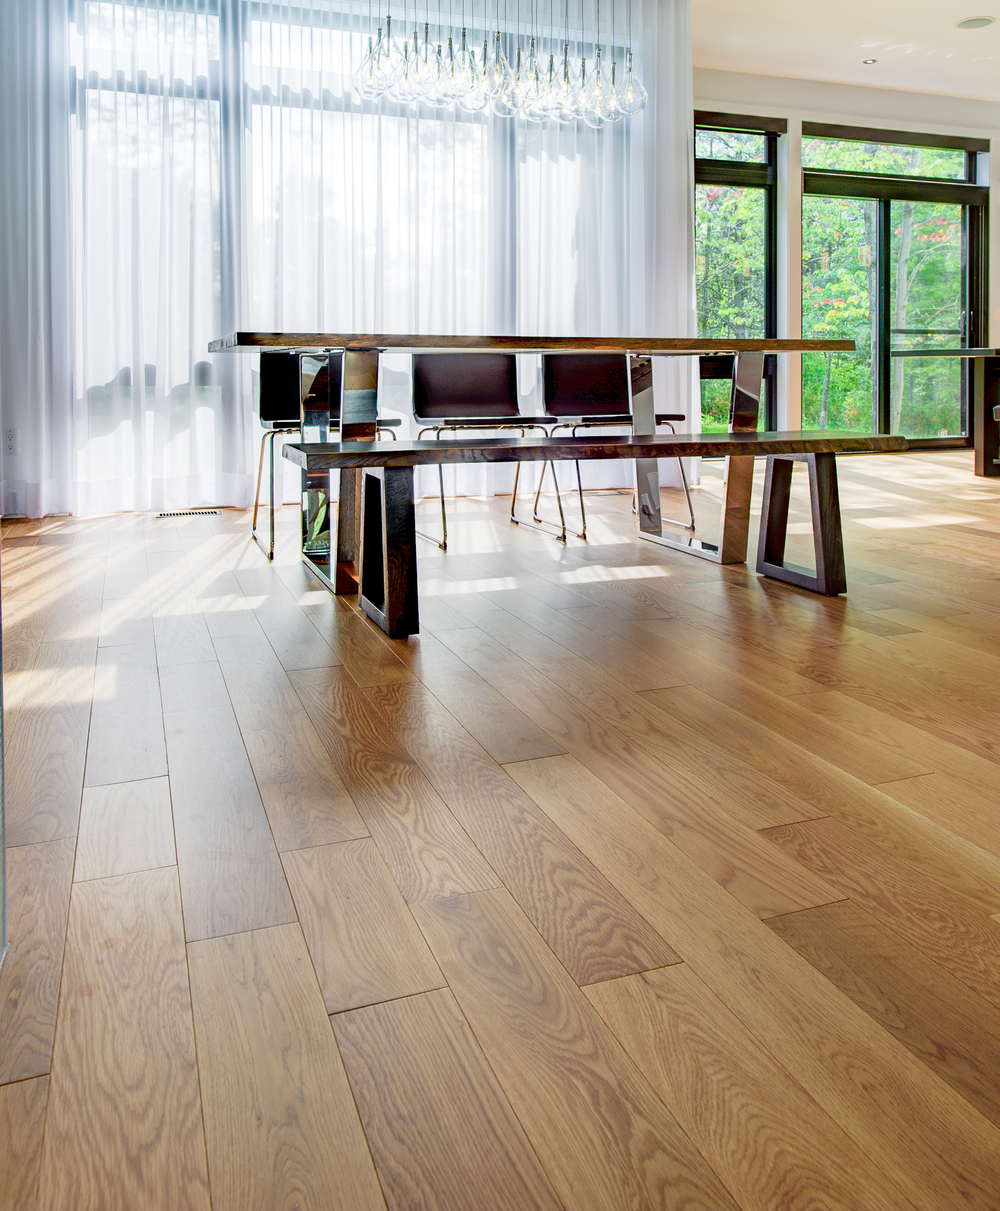 dining room red oak plank wood floor.jpg